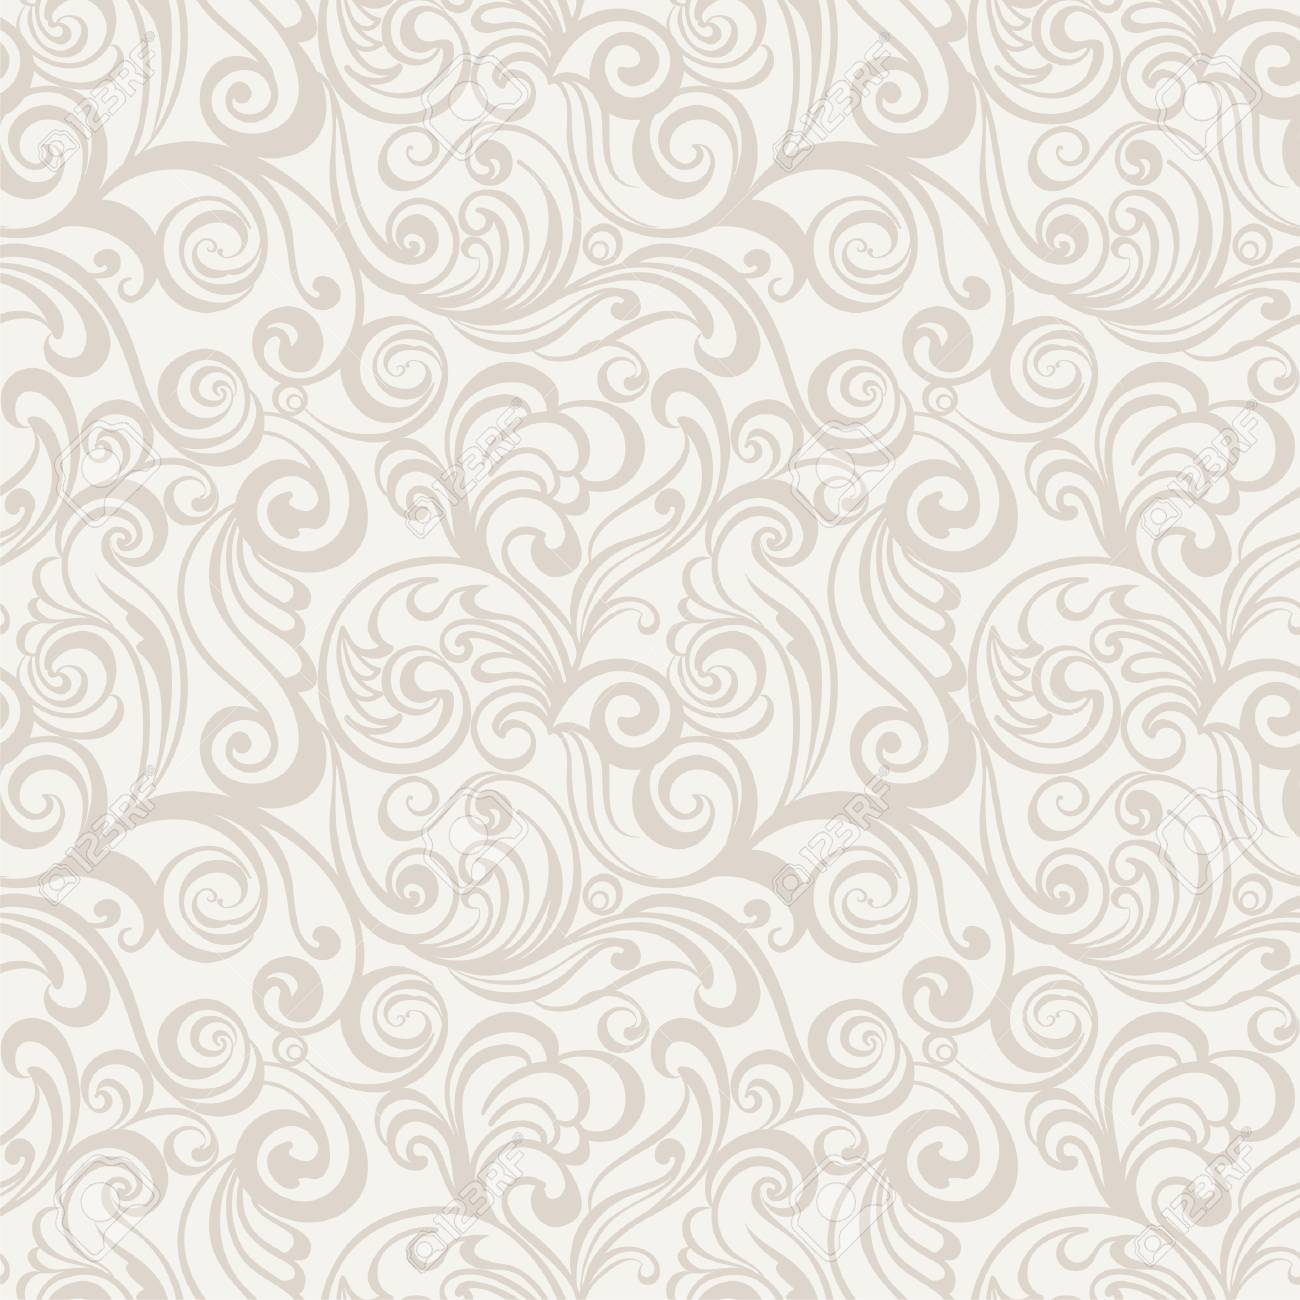 Seamless Floral Pattern Vintage Background Royalty Free Cliparts